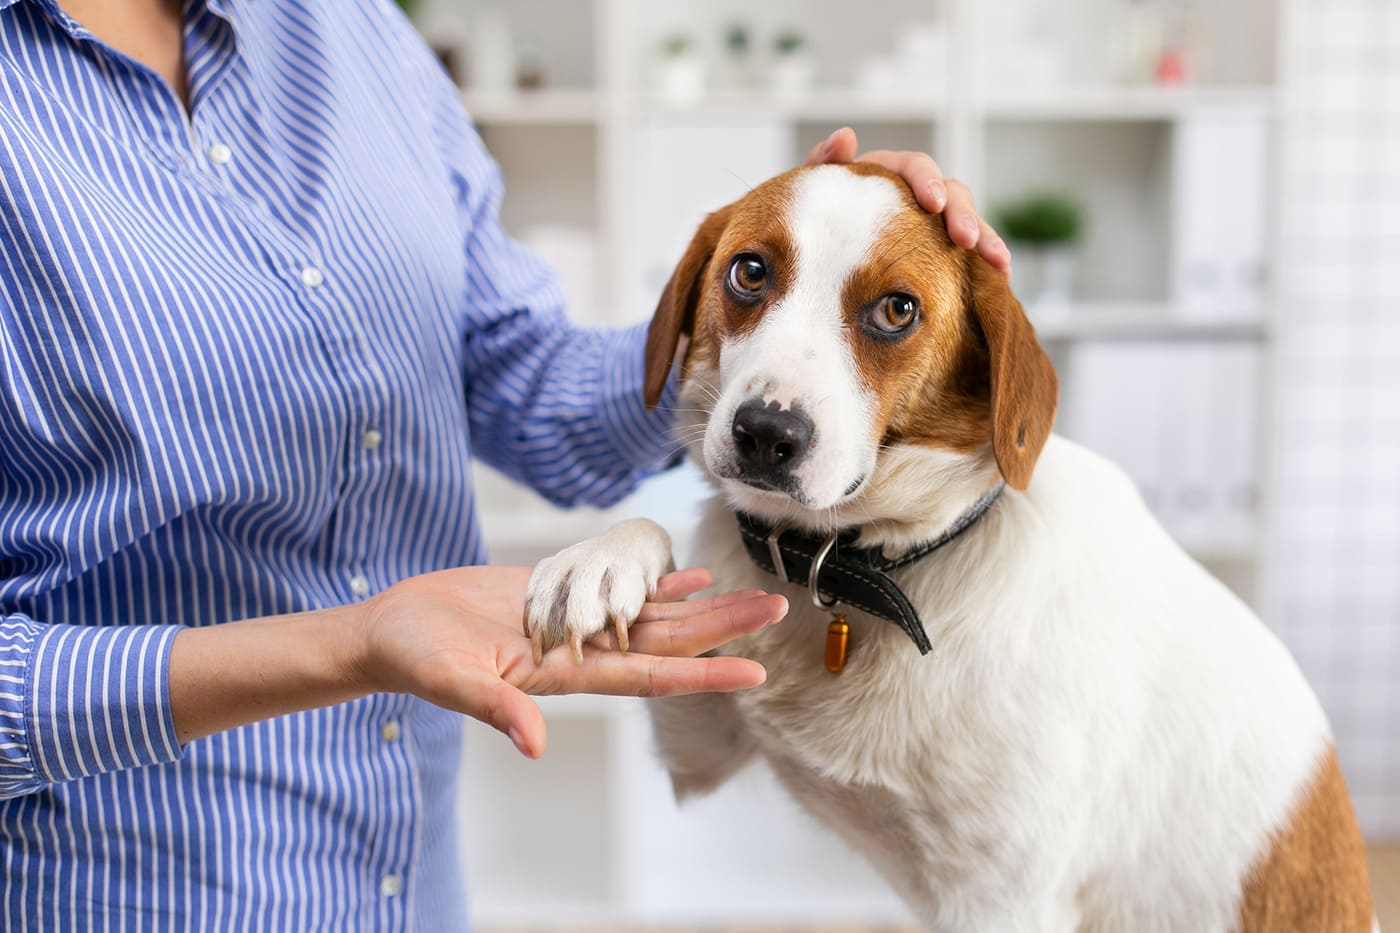 Dog Throwing Up Yellow Bile, causes and treatments